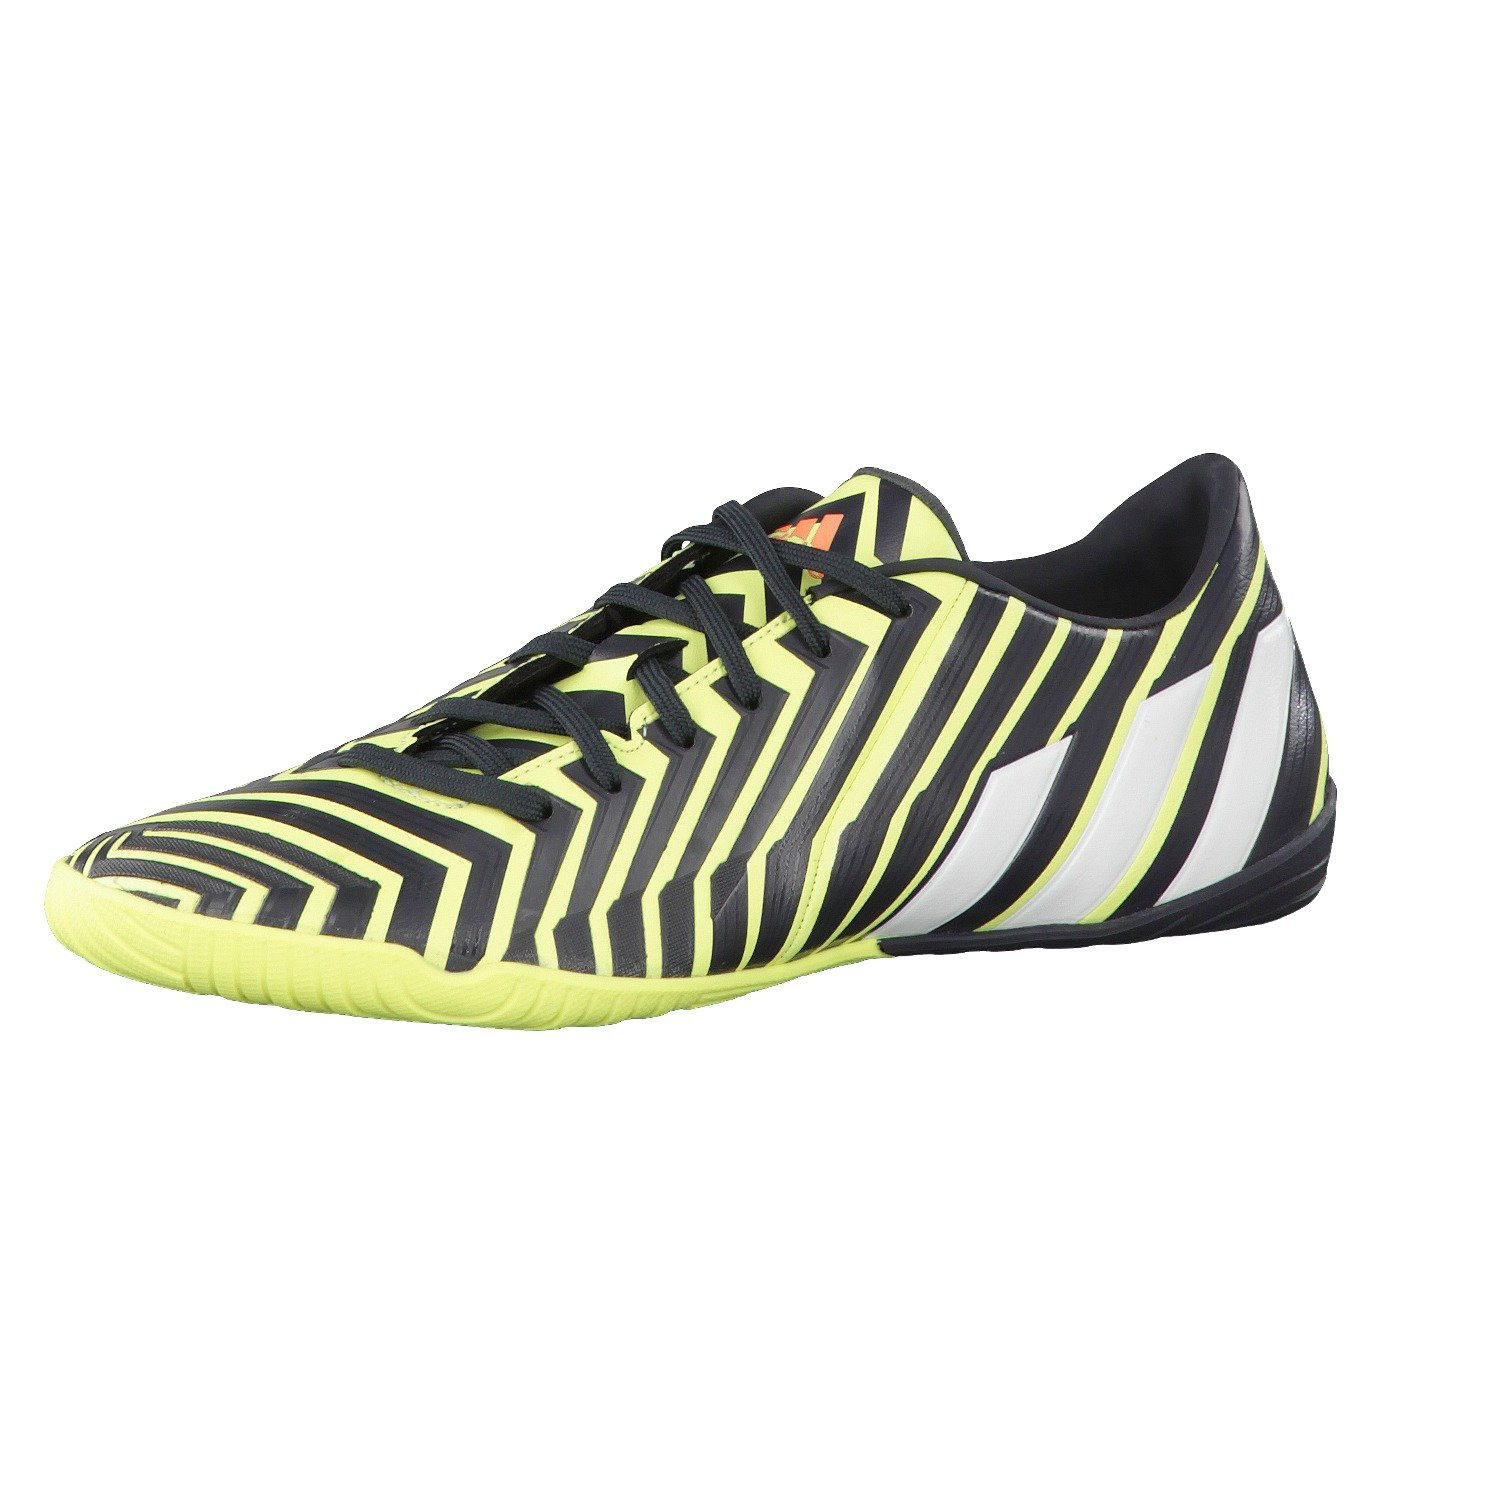 Adidas Fussballschuhe P Absolado Instinct IN 46 2 3 light flash yellow s15 ftwr Weiß dark Grau